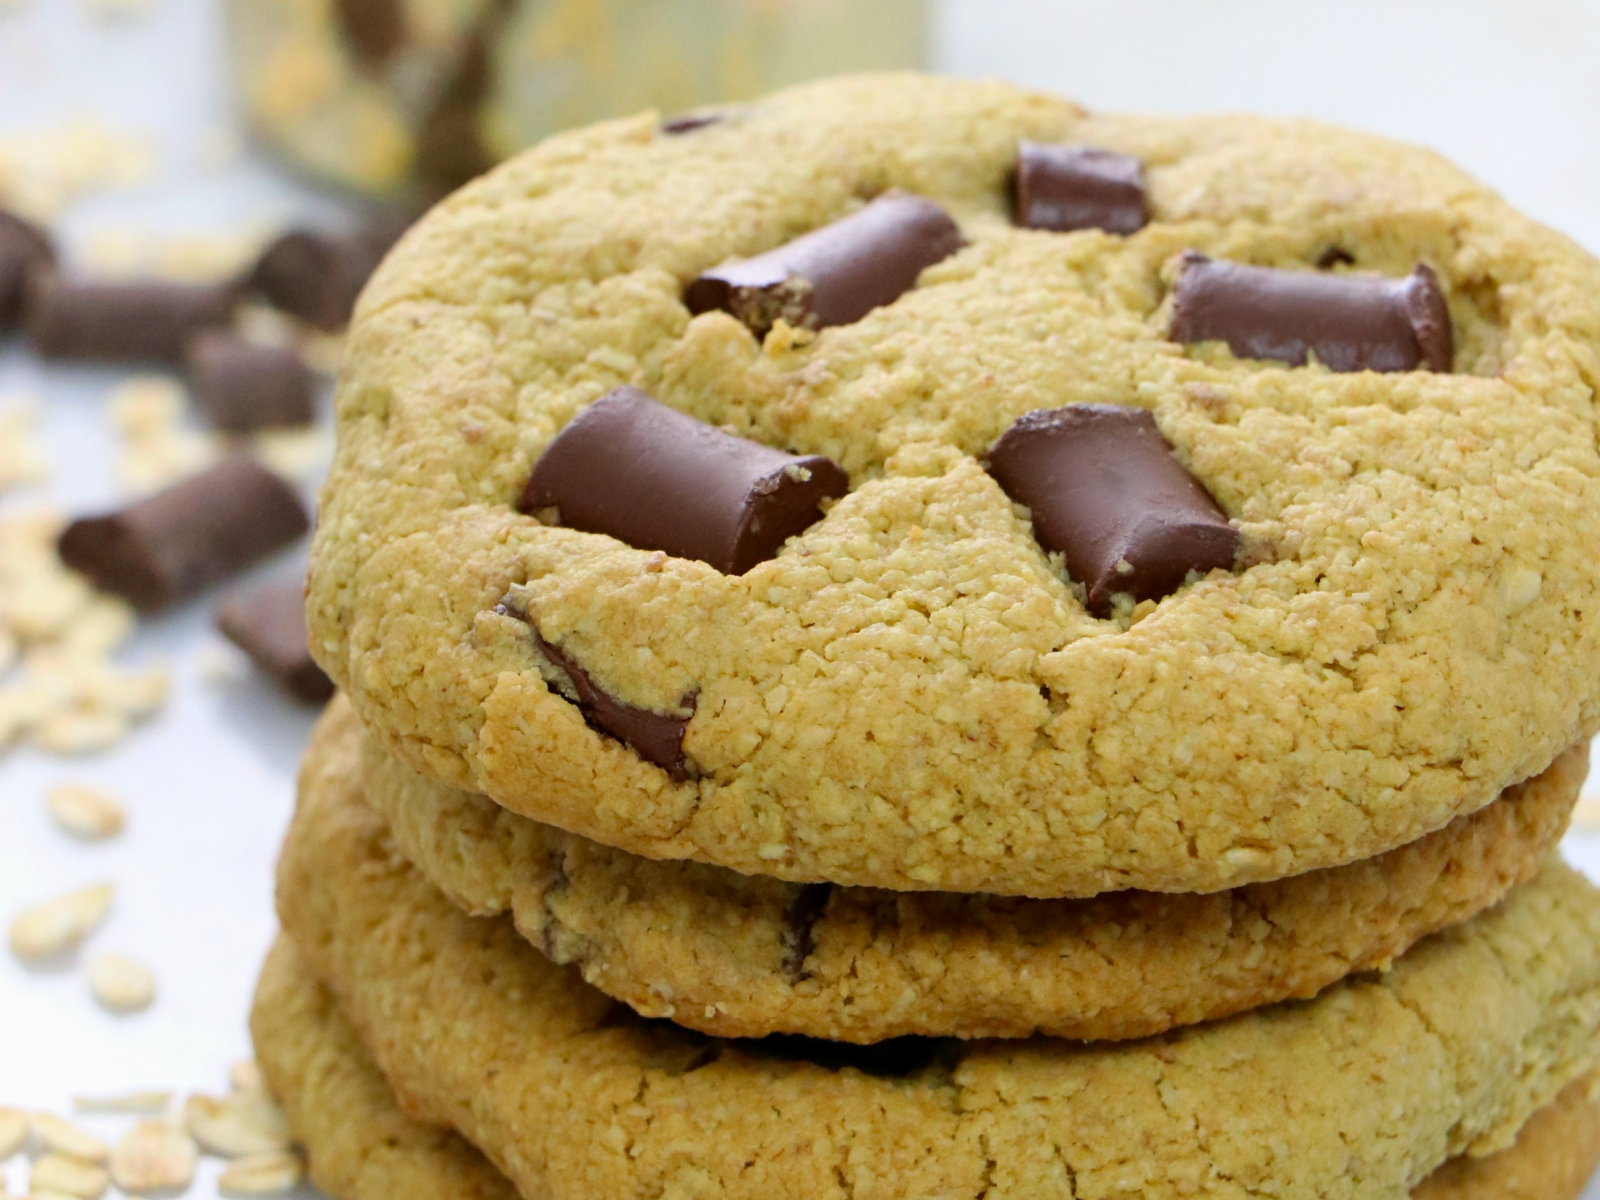 Gluten-Free Oat Flour Chocolate Chip Cookies